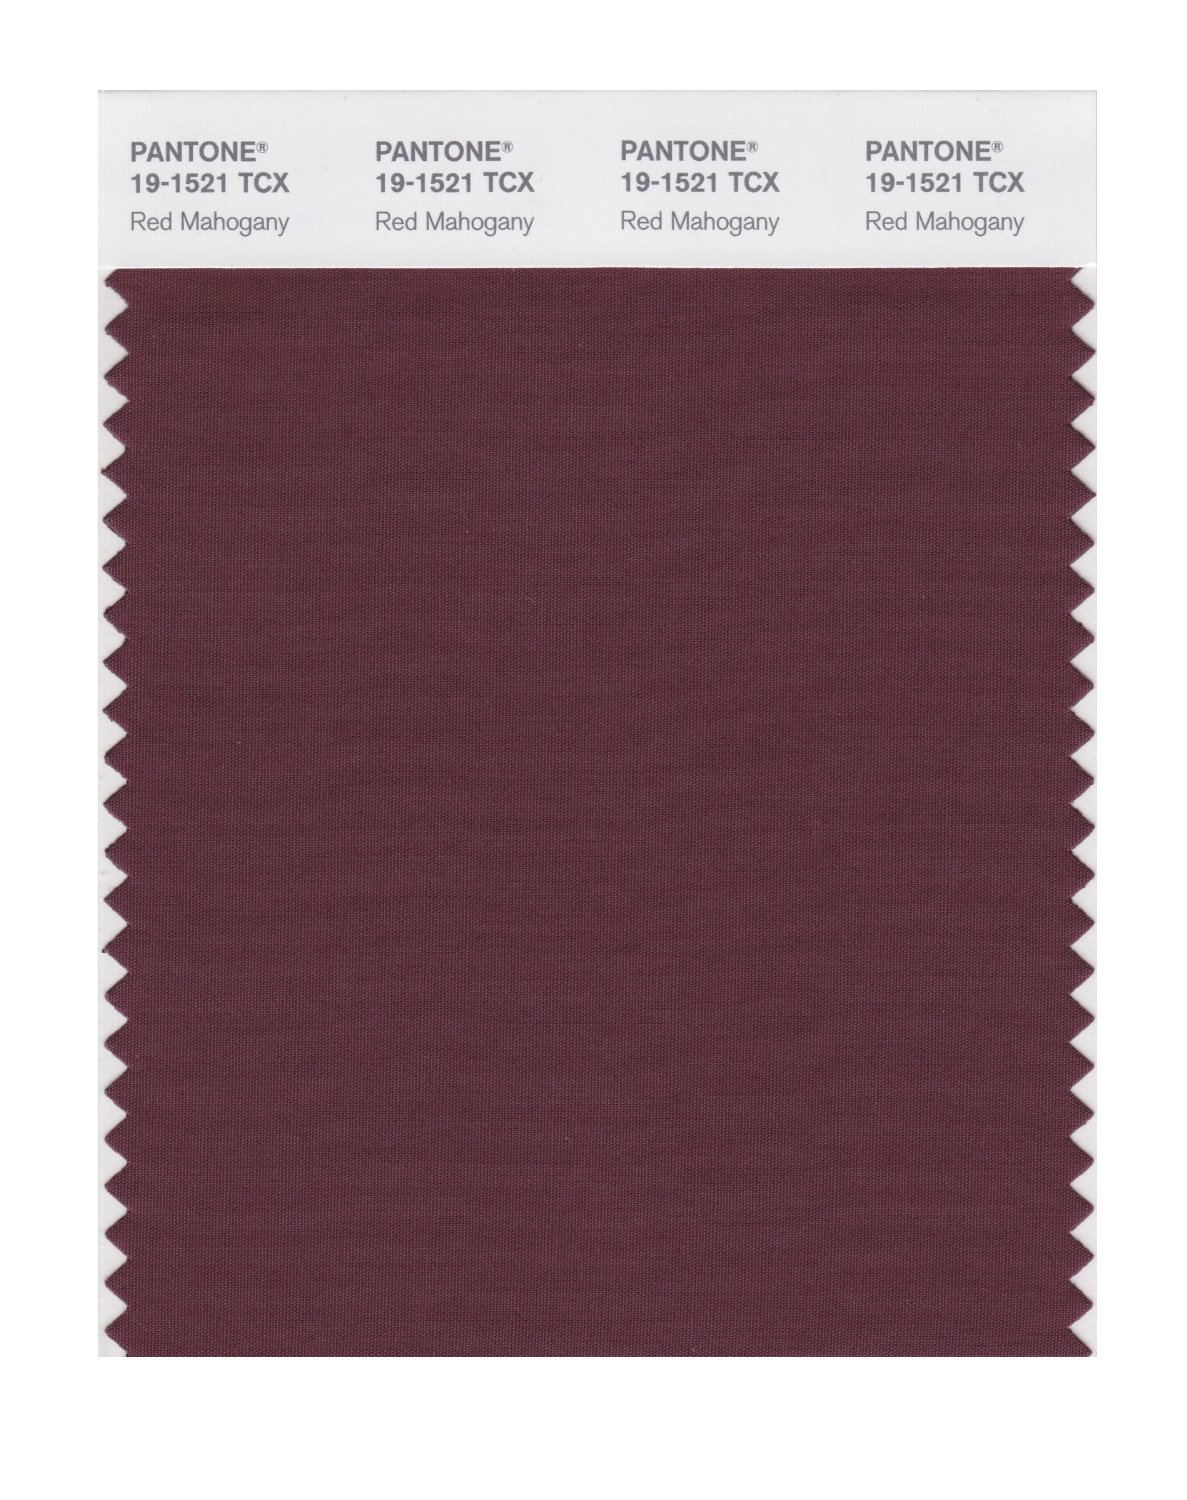 Pantone Smart Swatch 19-1521 Red Mahogany